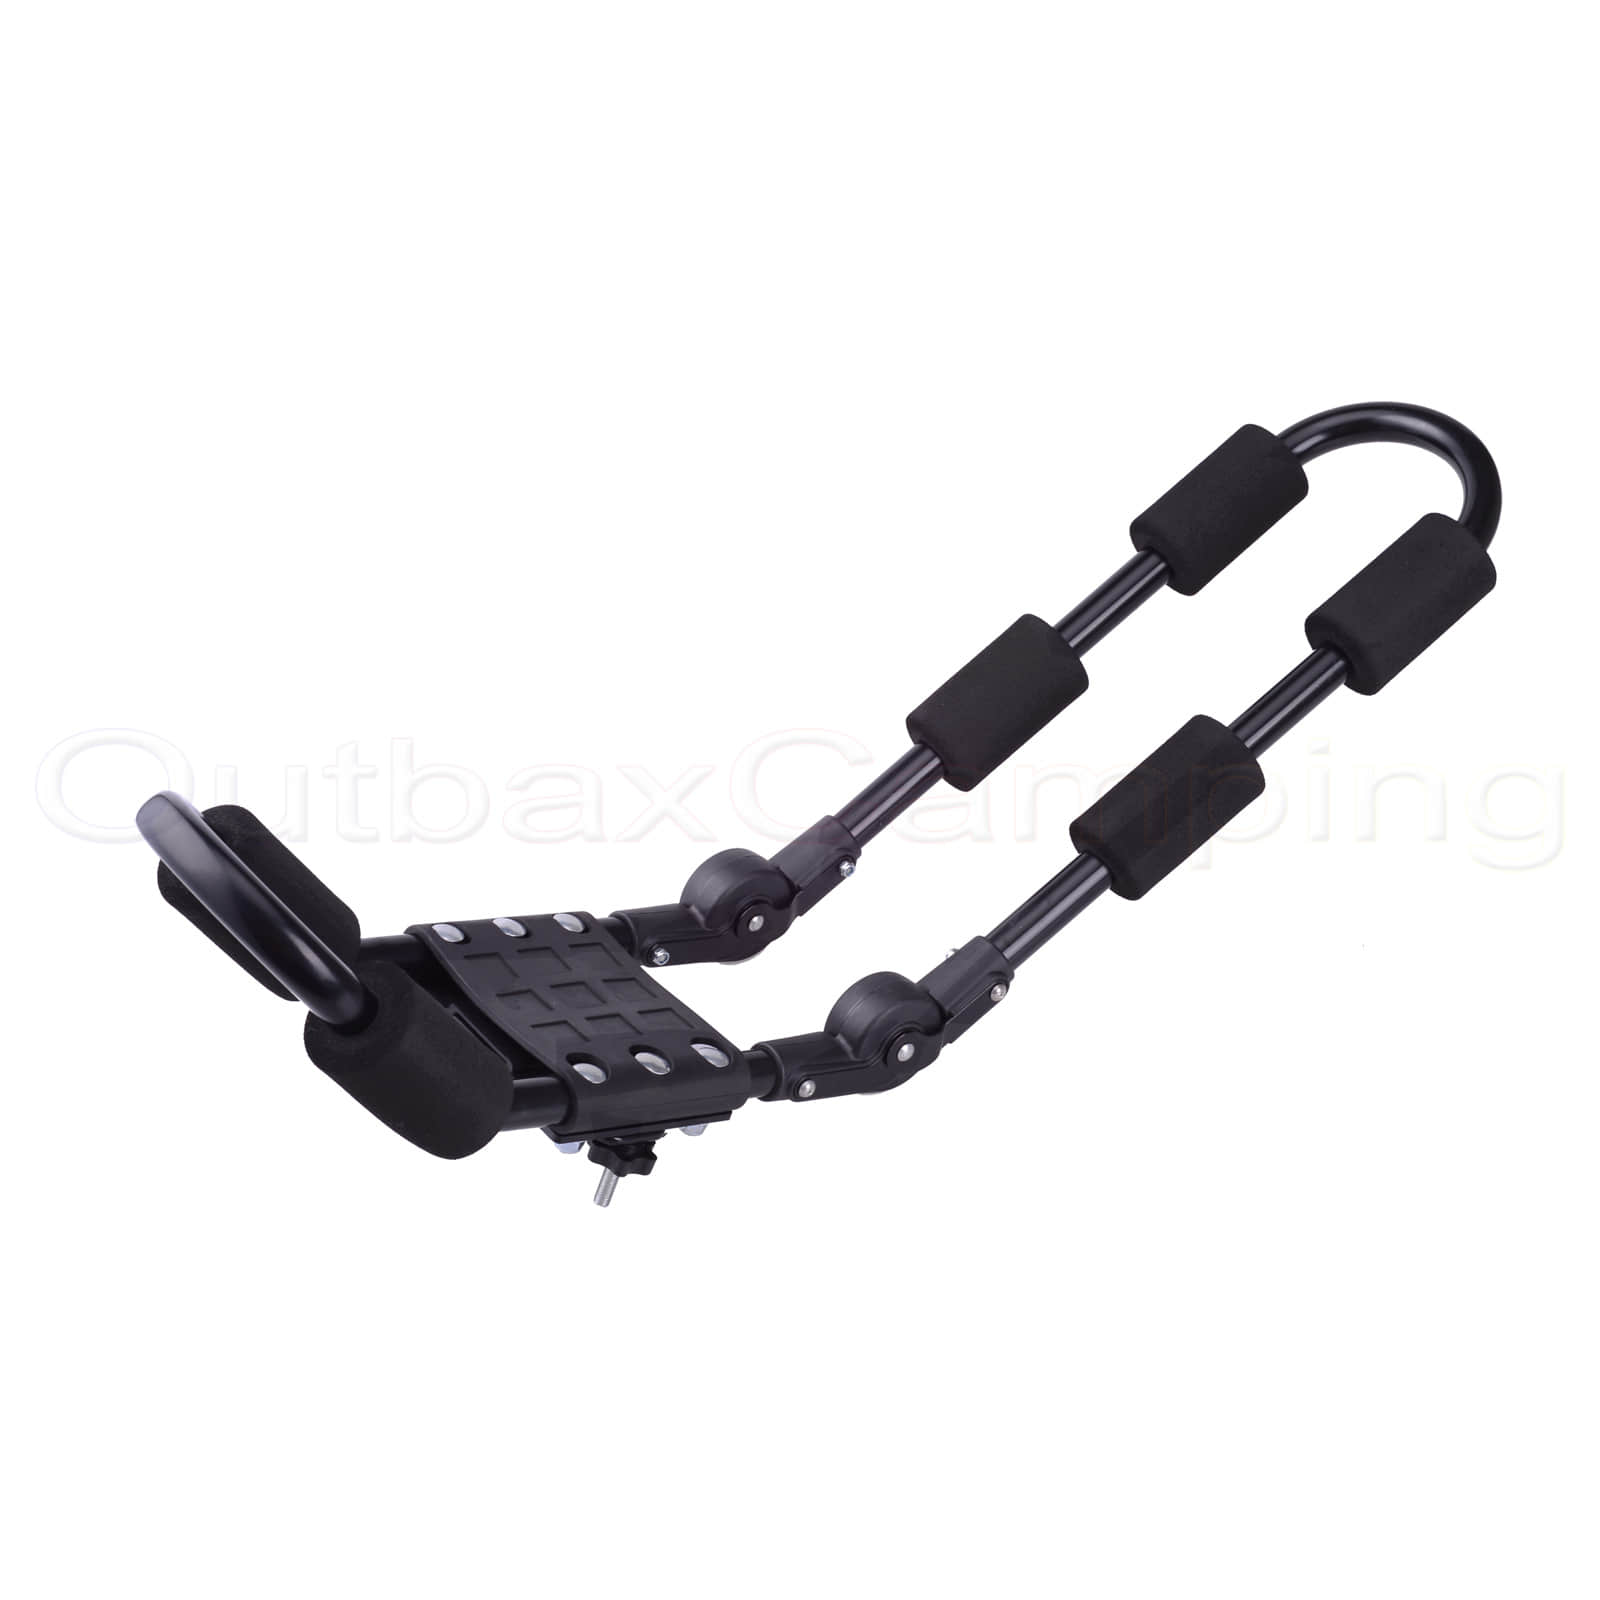 Adjustable Angle Foldable arms J Style Roof Rack Holder Kayak Canoe Carries